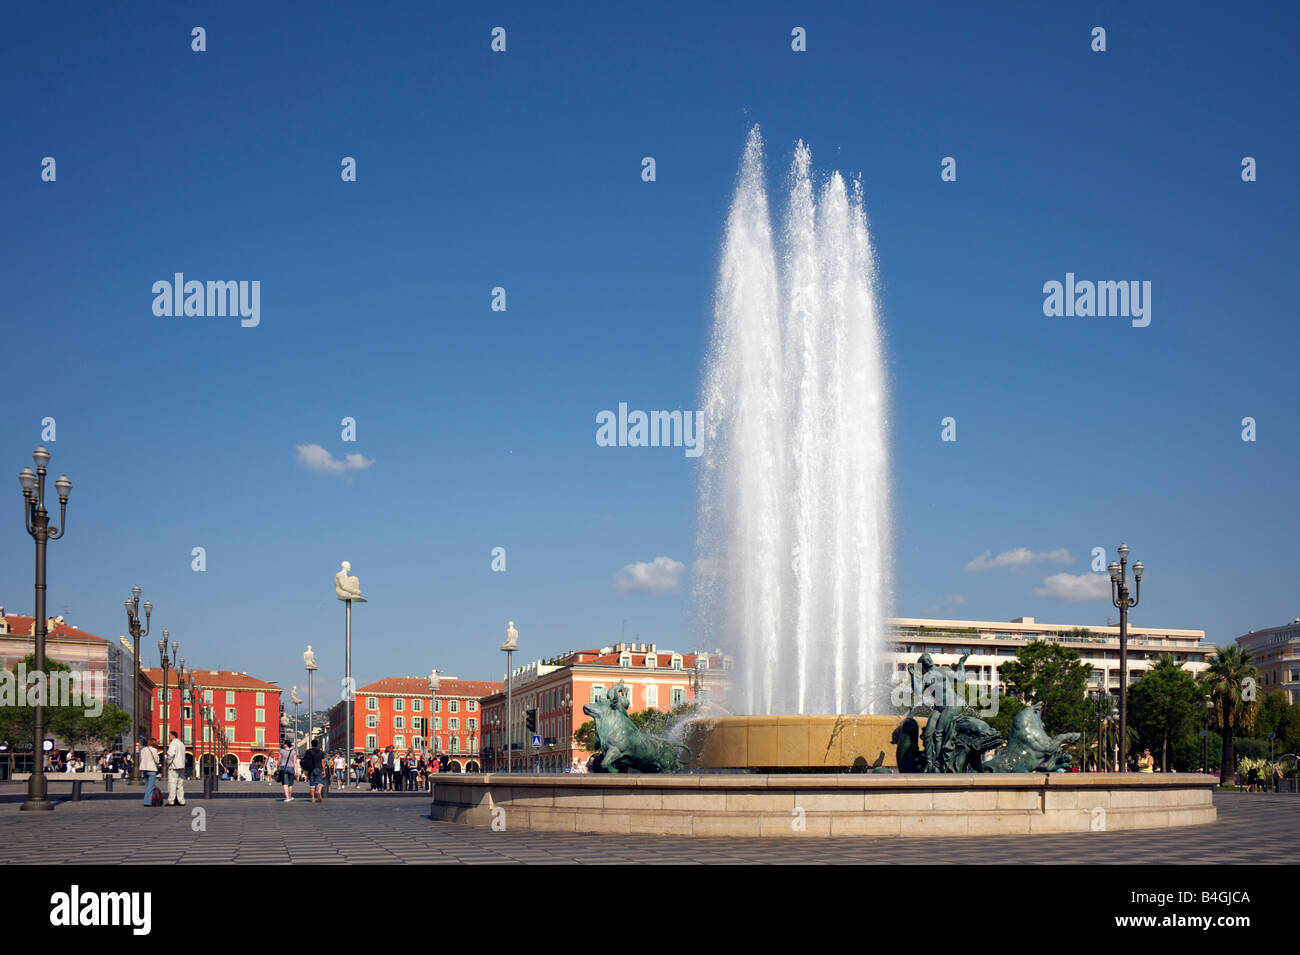 The restored fountain at Place Massena France - Stock Image